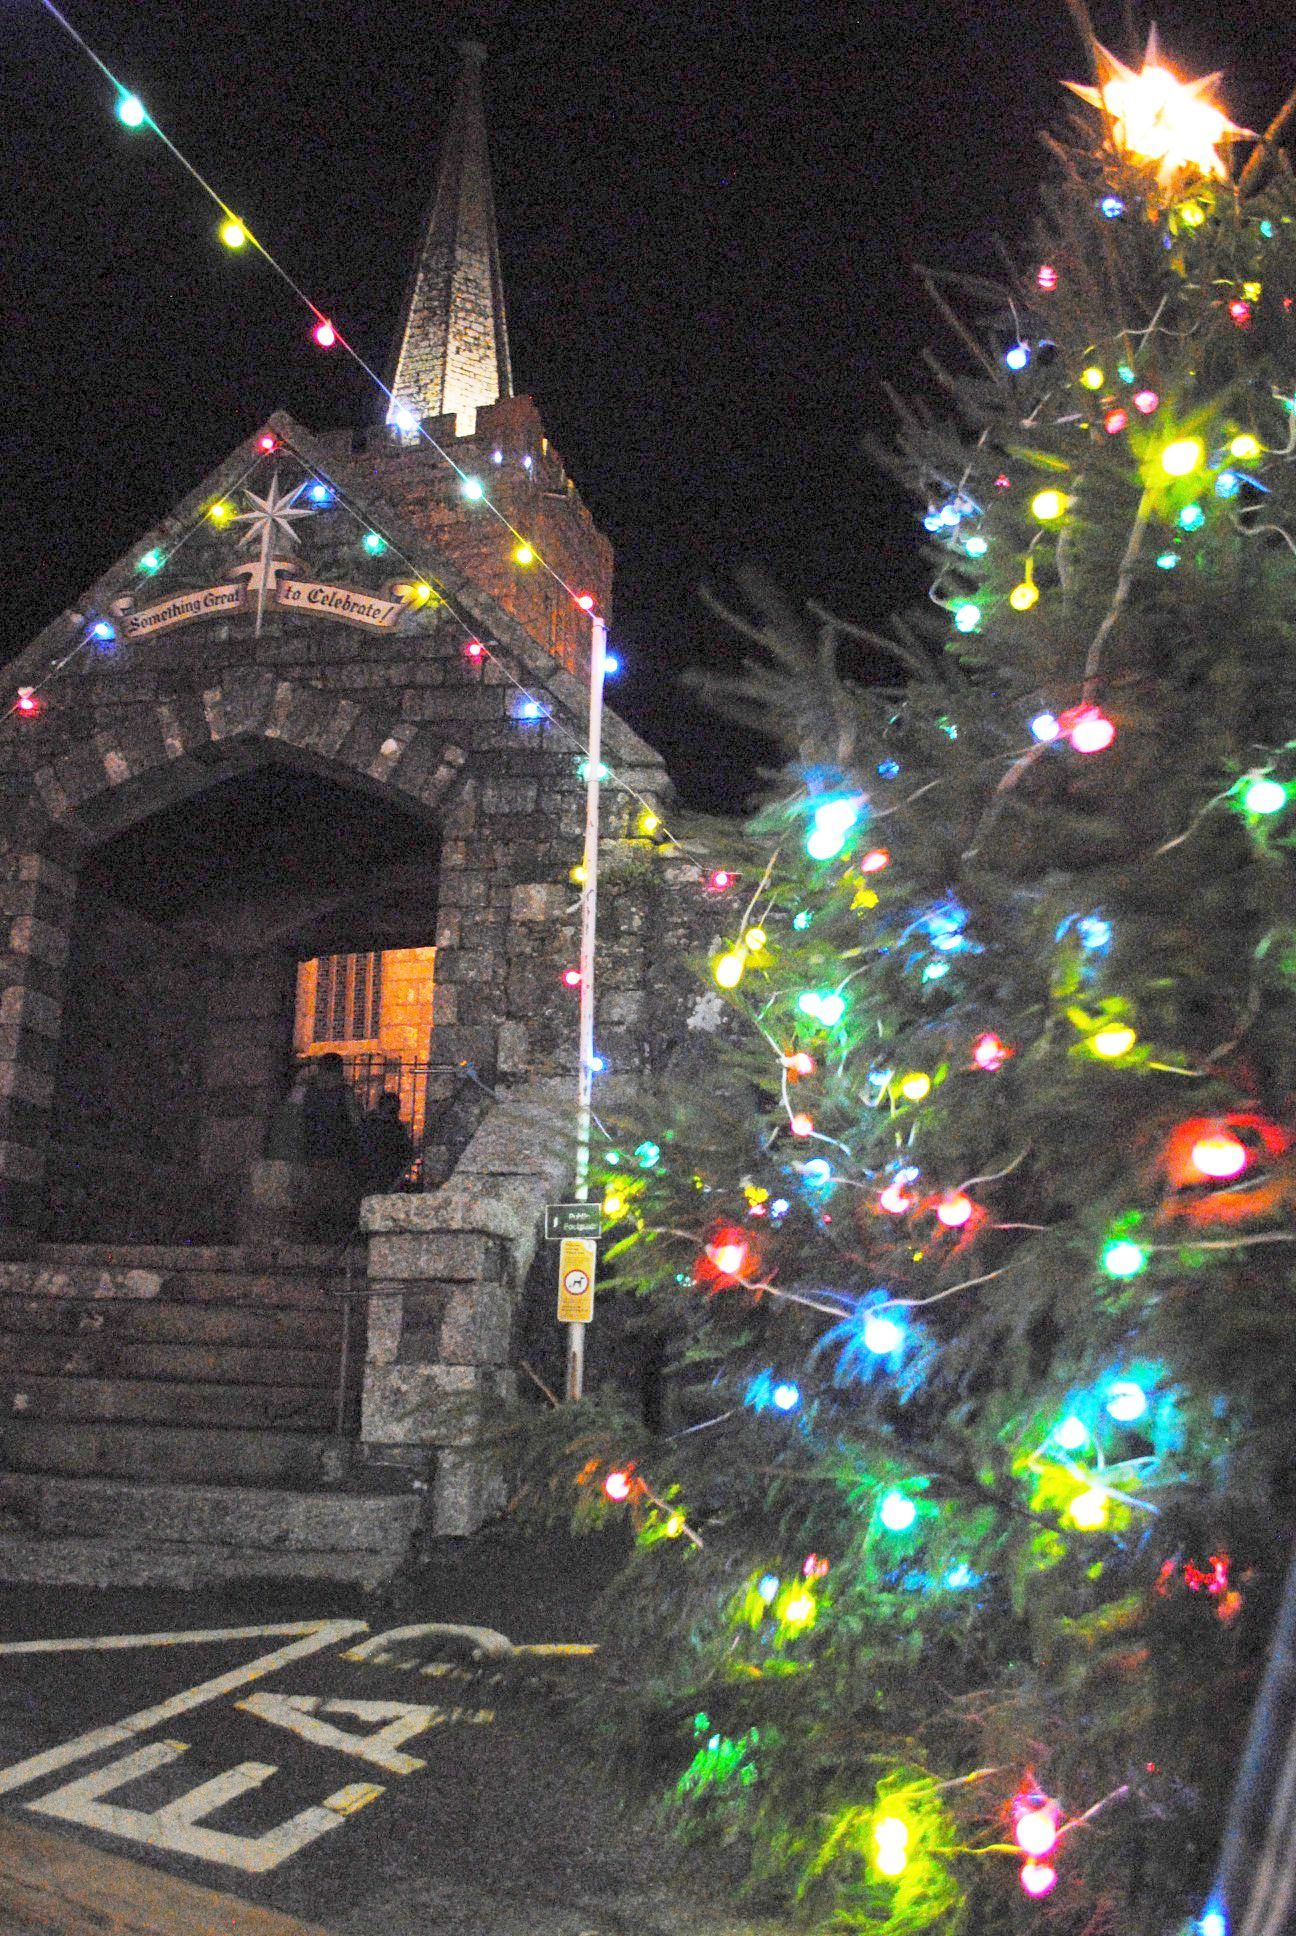 Bid to move St Keverne Christmas tree to centre of square